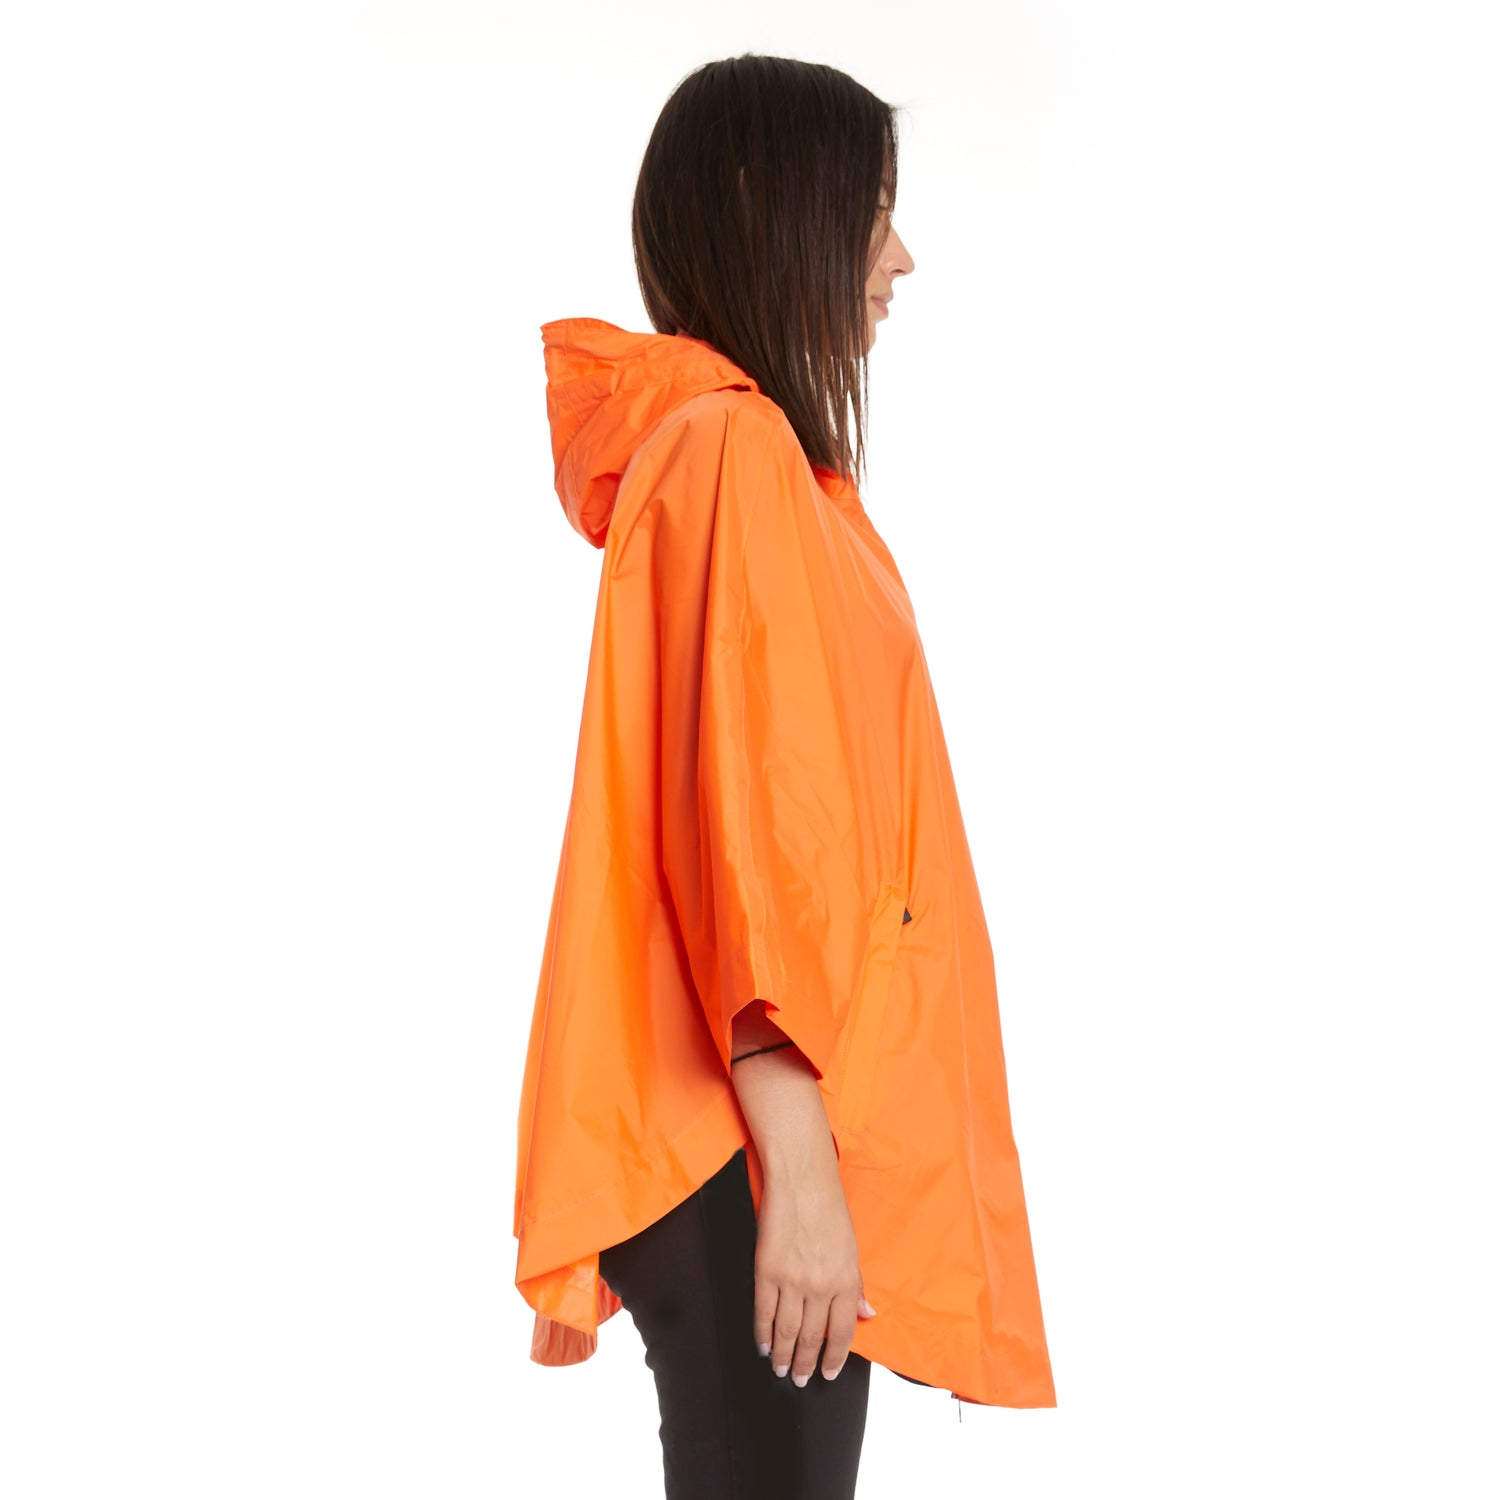 K-Way Women's Le Vrai 3.0 Morgan Full Zip Poncho Orange Flame